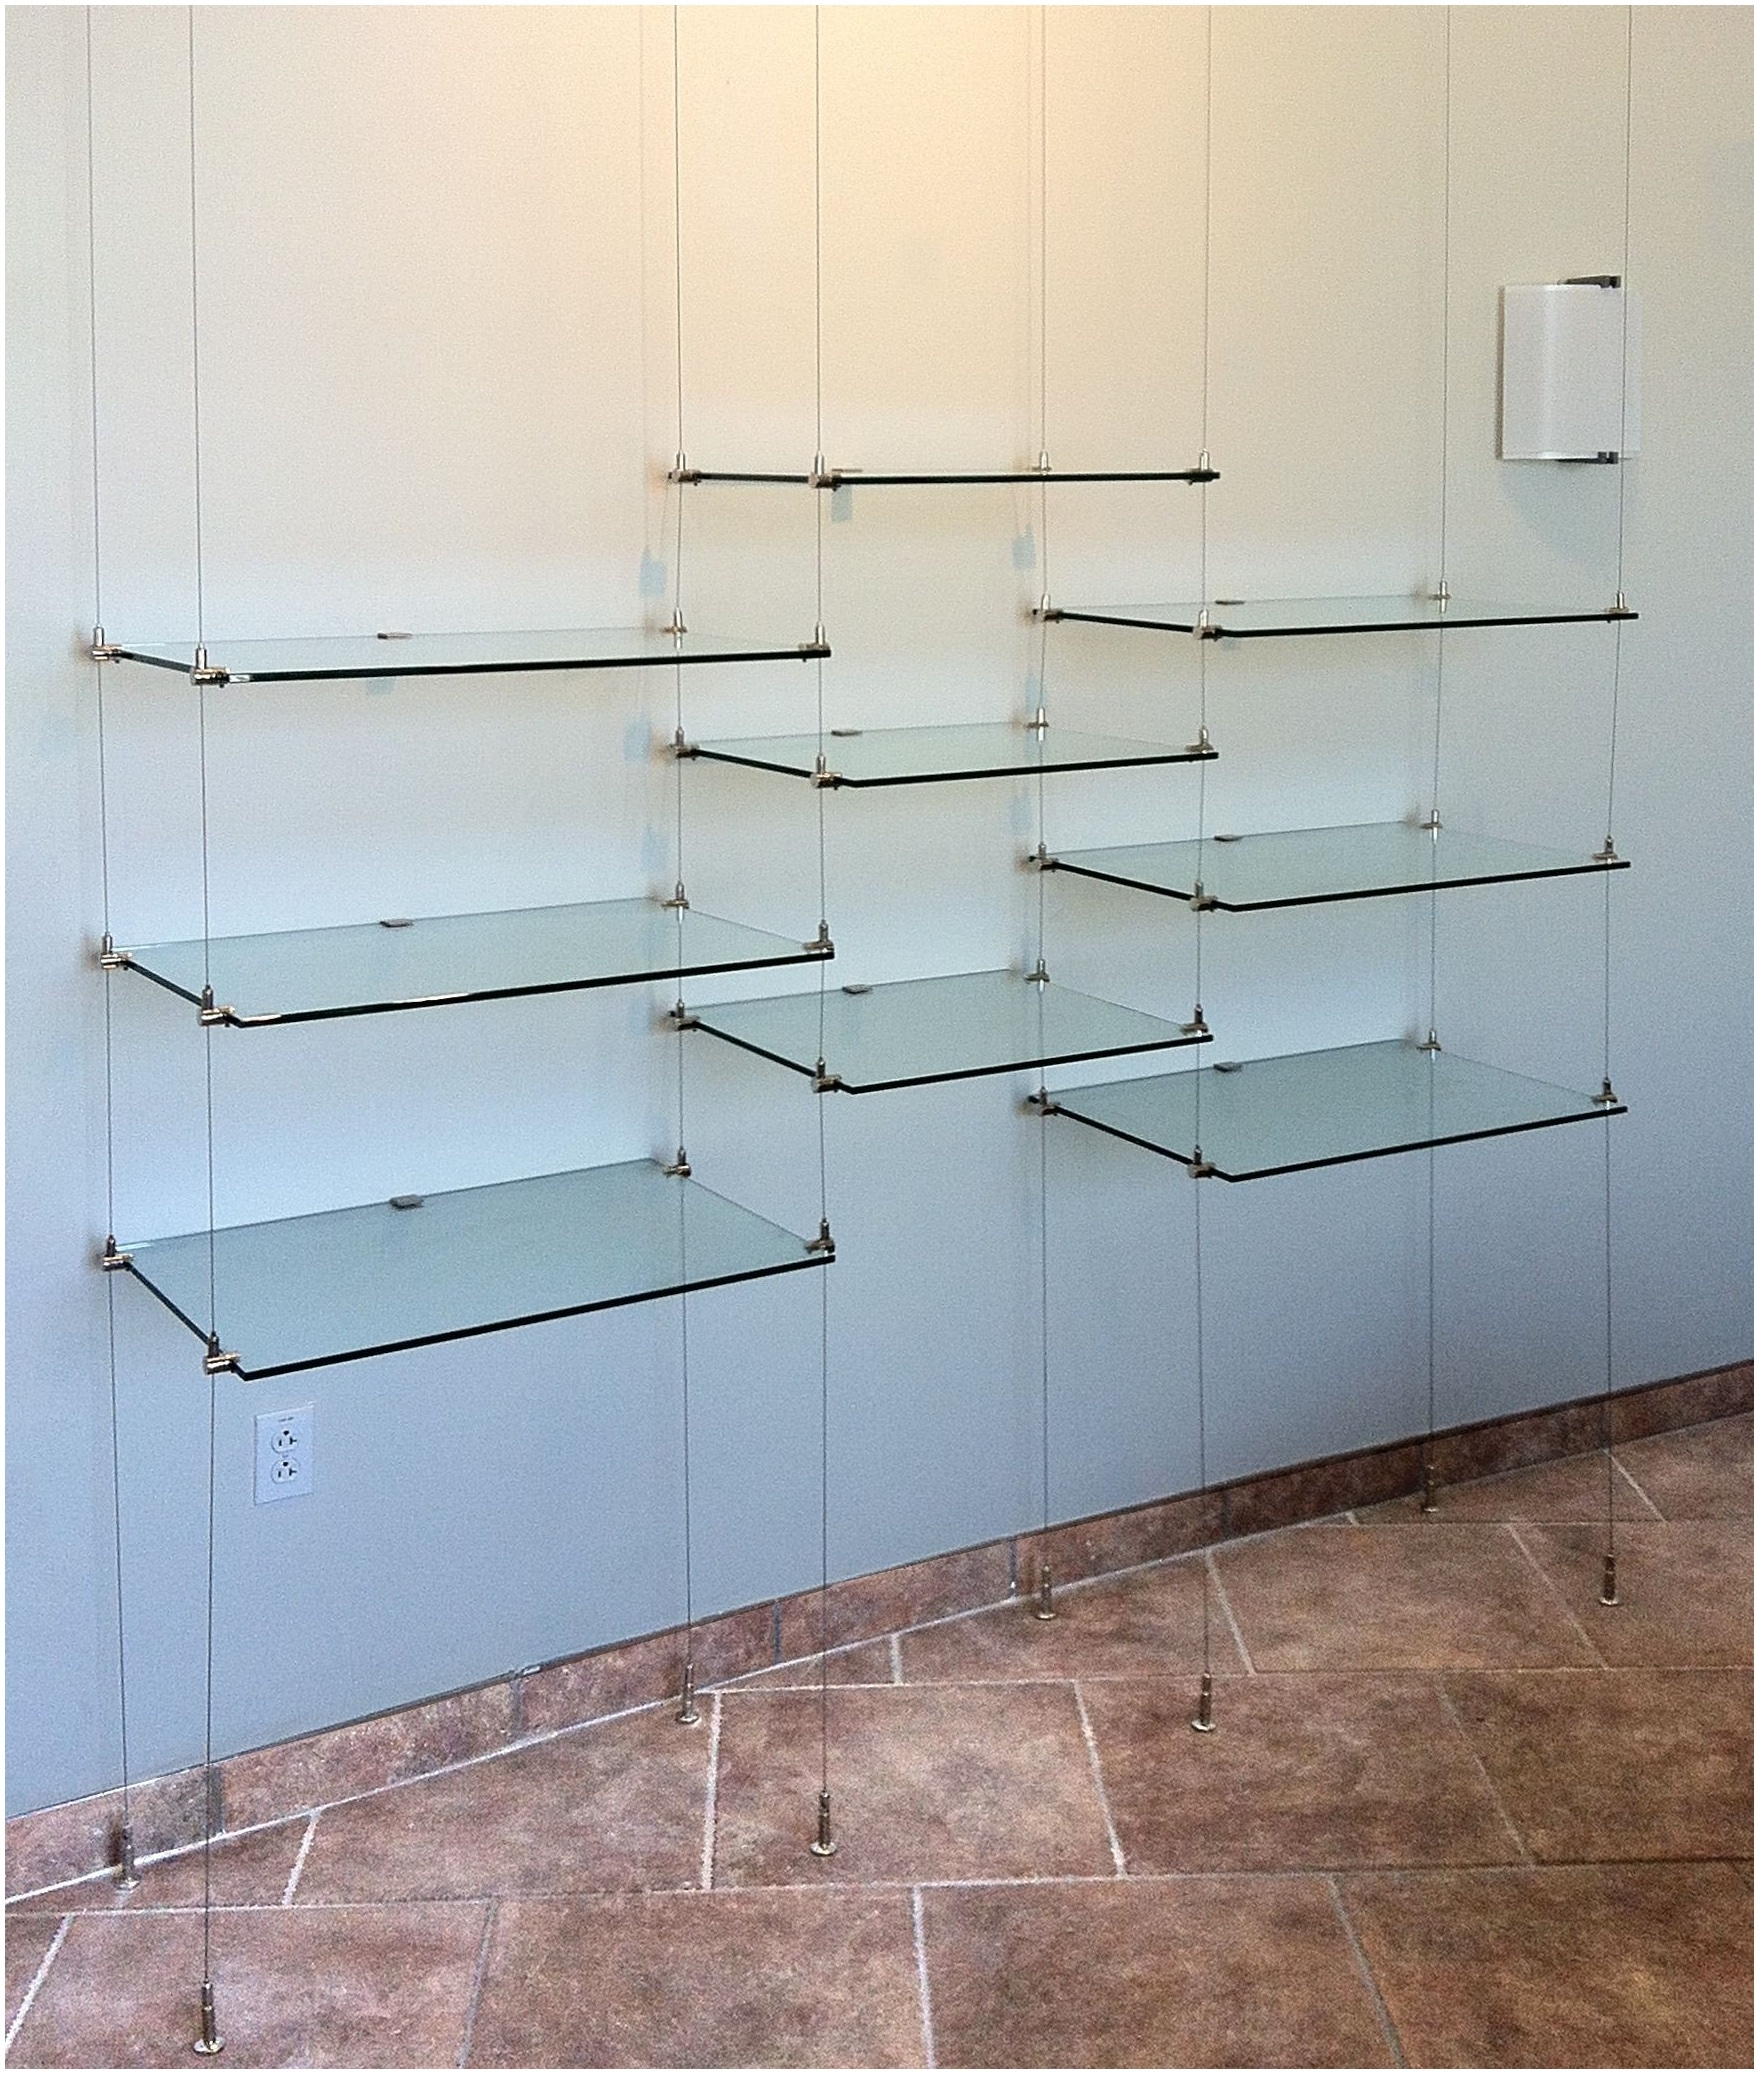 Suspended Glass Shelving Systems Design Modern Shelf Storage And Regarding Glass Shelf Cable Suspension System (Image 13 of 15)